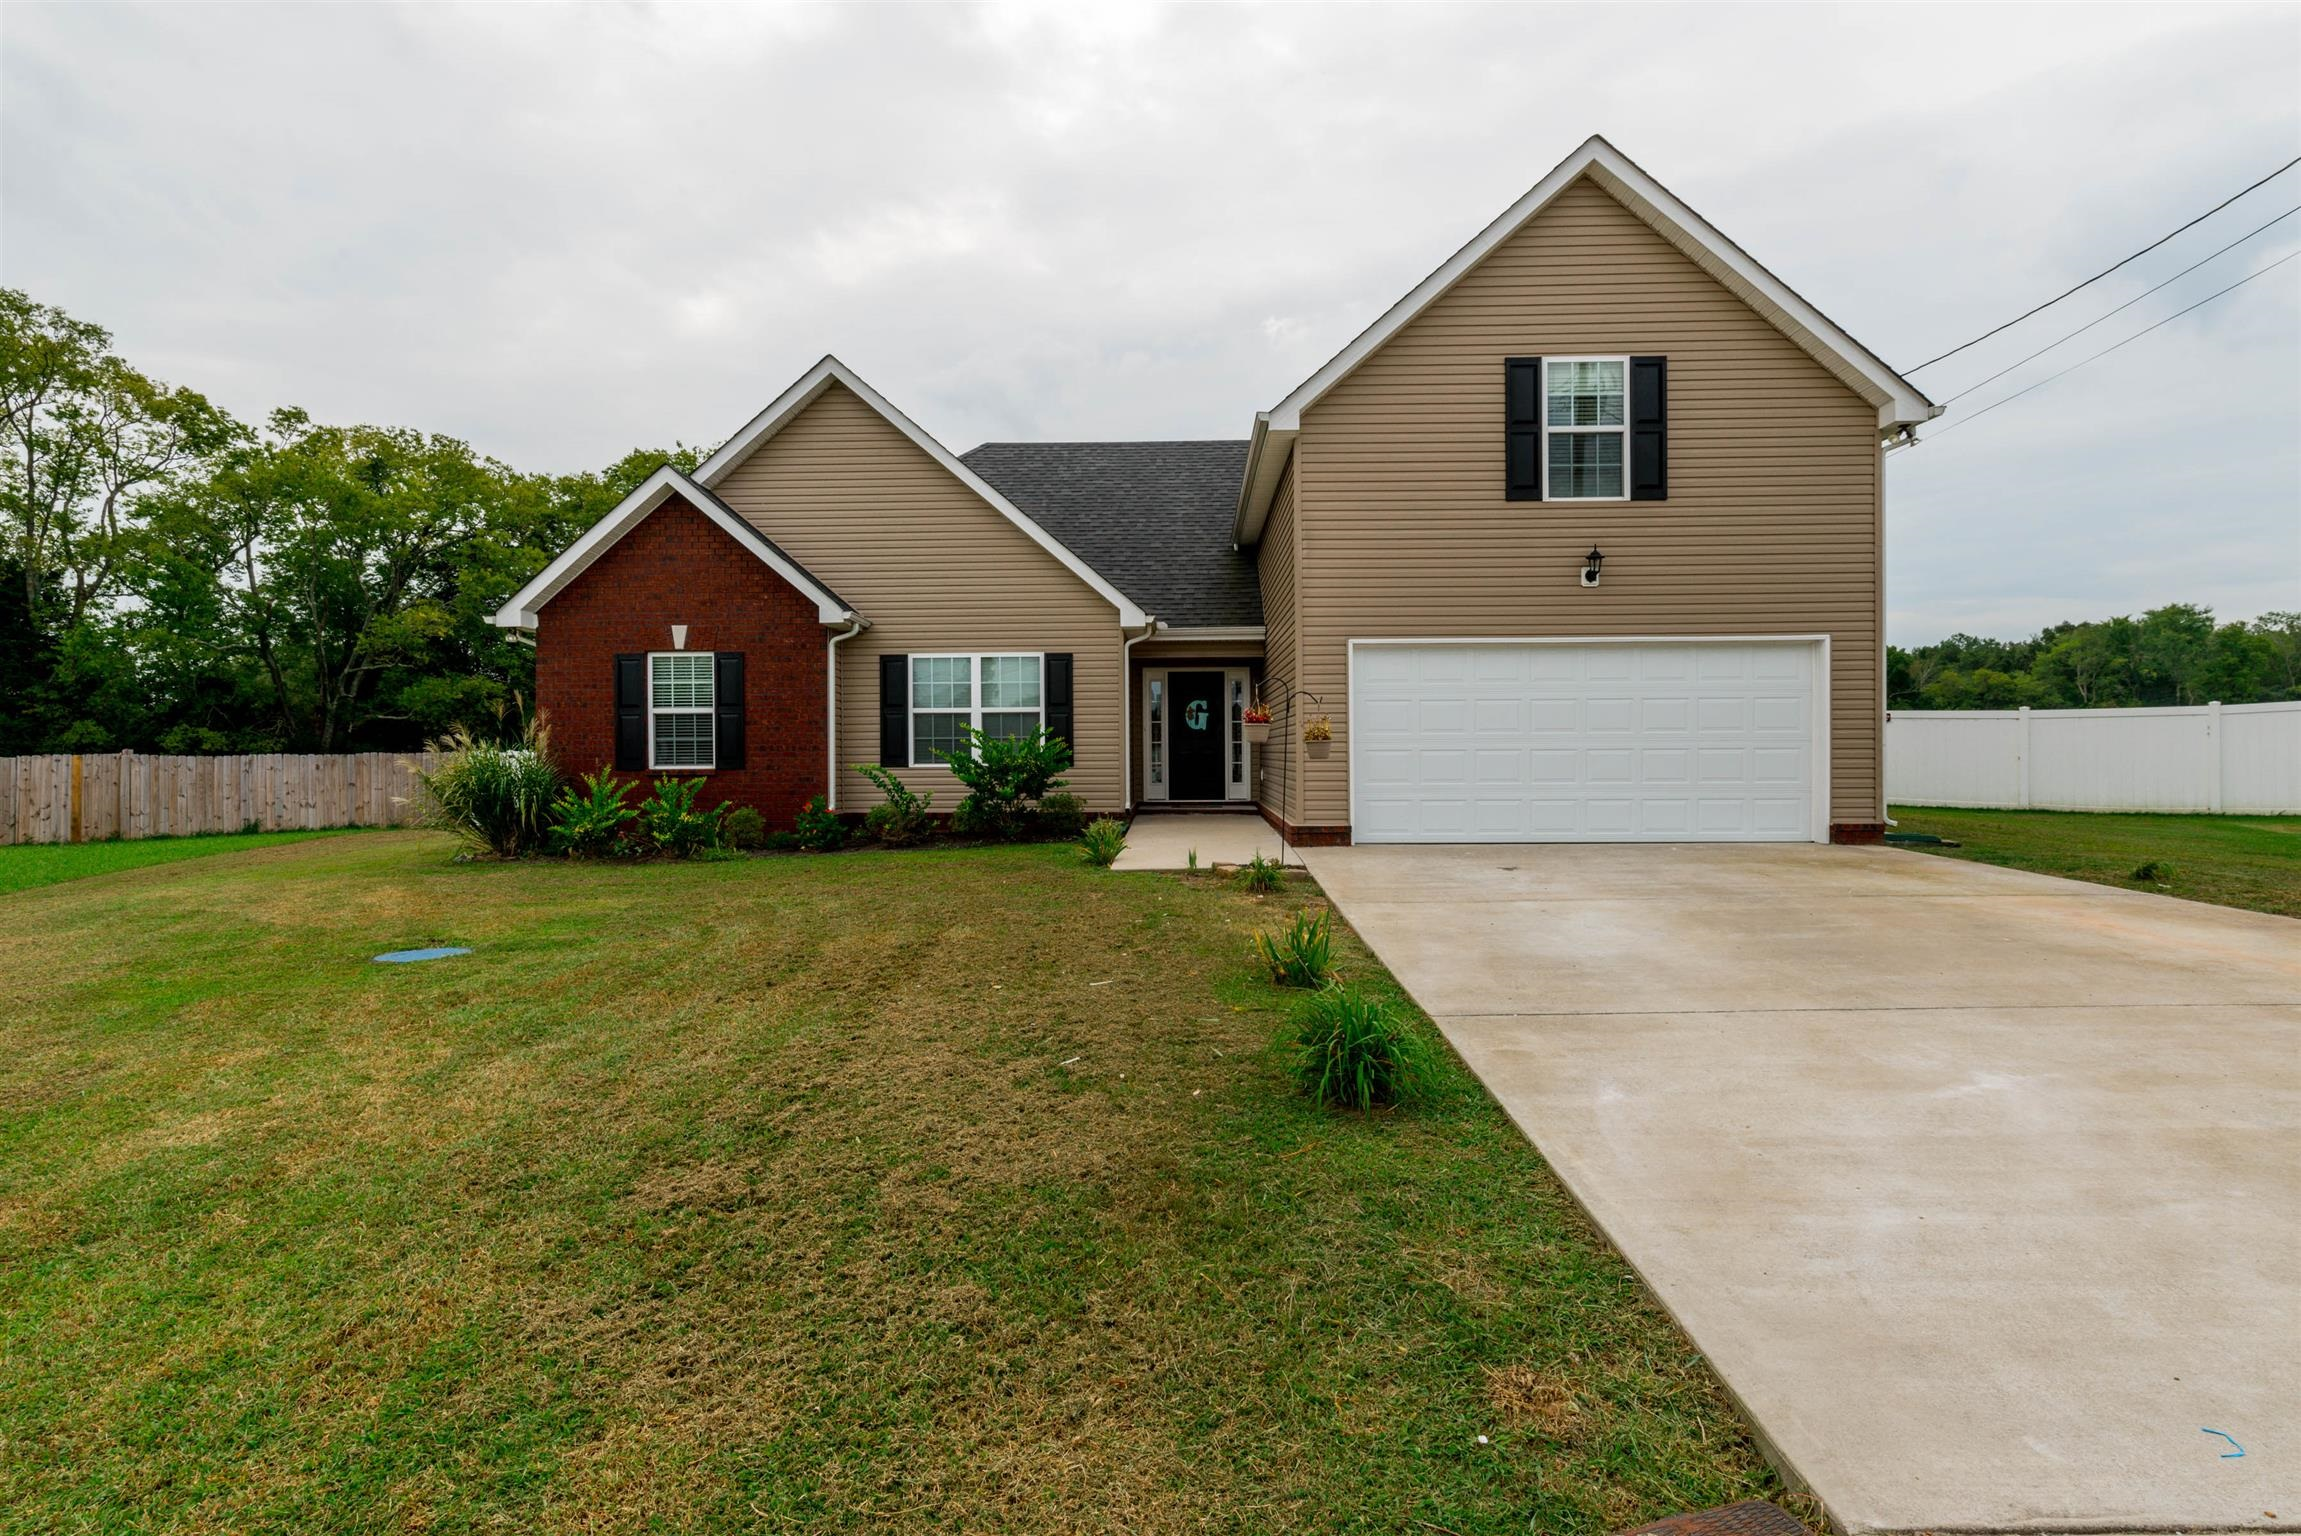 hindu singles in bradyville Searching for homes for sale in bradyville, tn find local real estate listings with century 21.